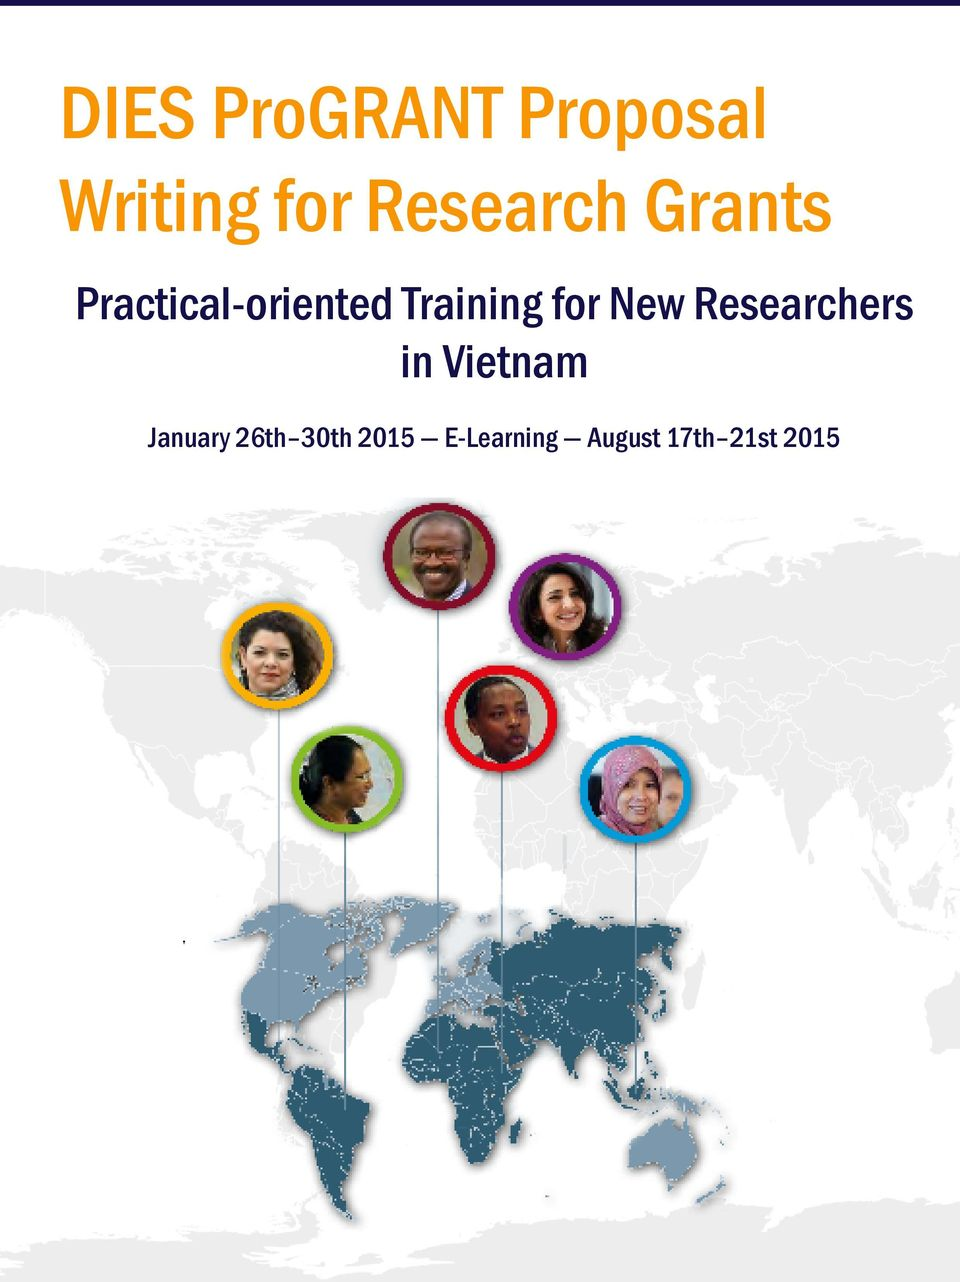 Training for New Researchers in Vietnam